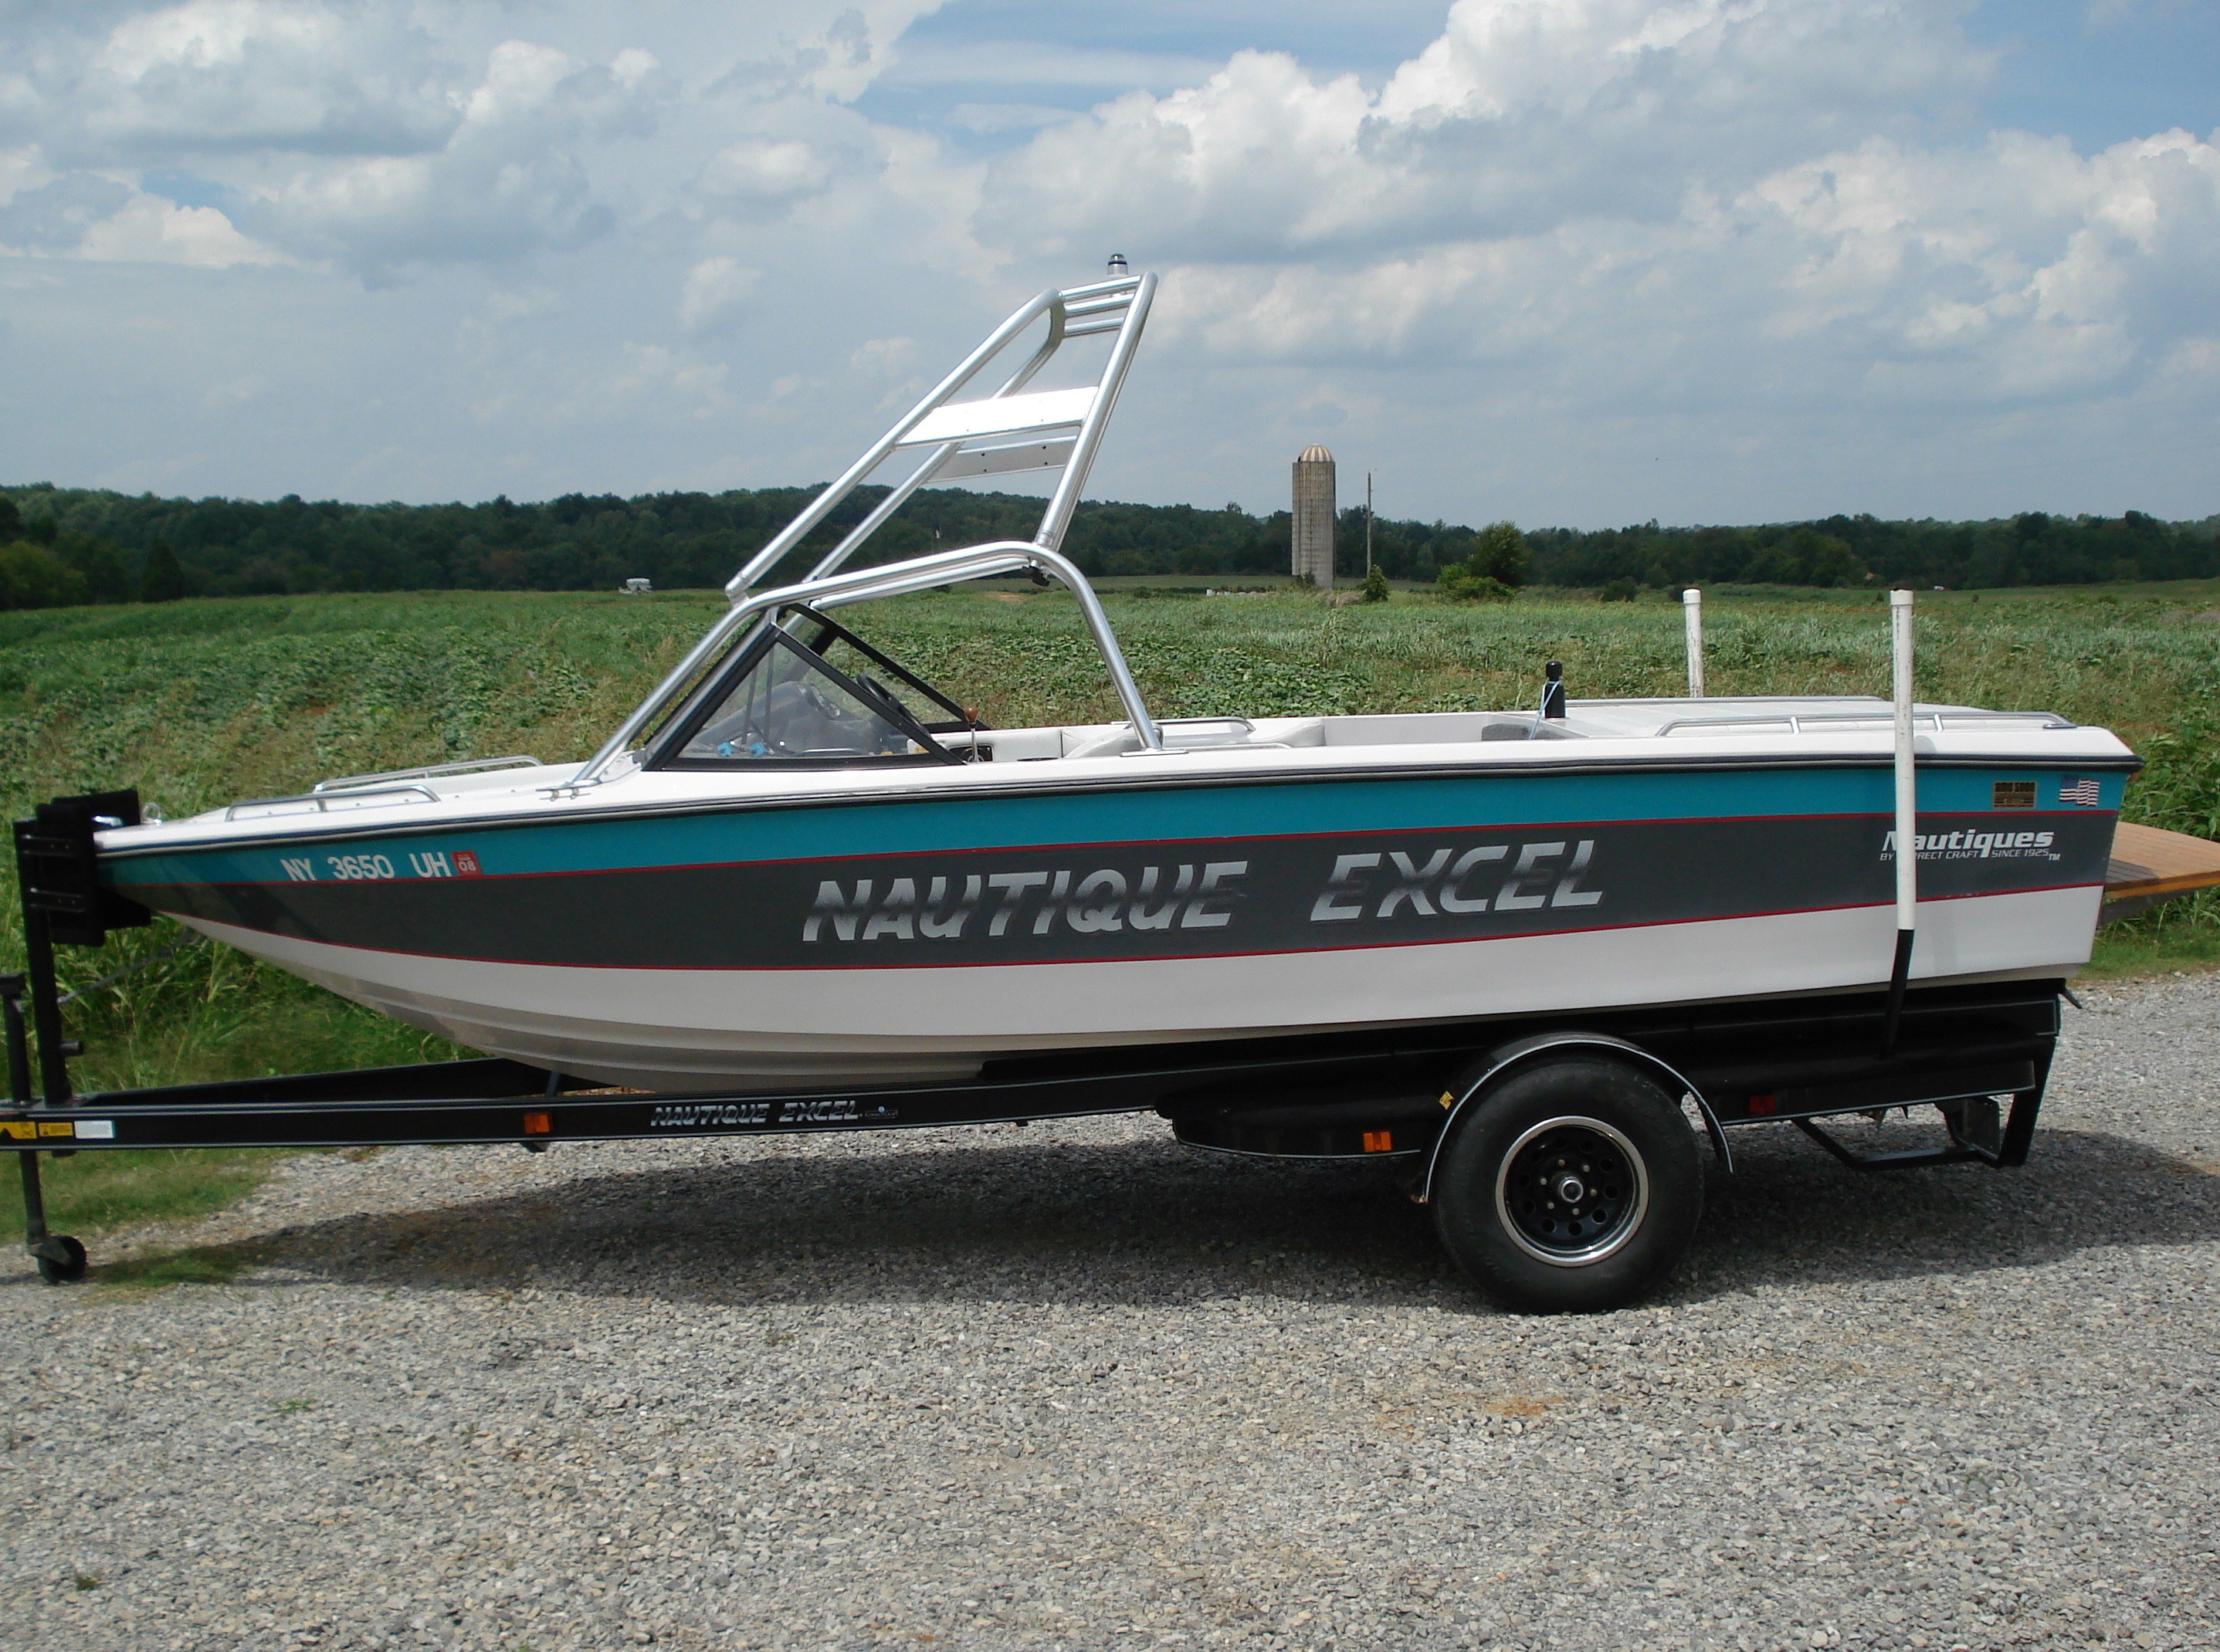 main view of 91 - 94 nautique excel with new dimension tower